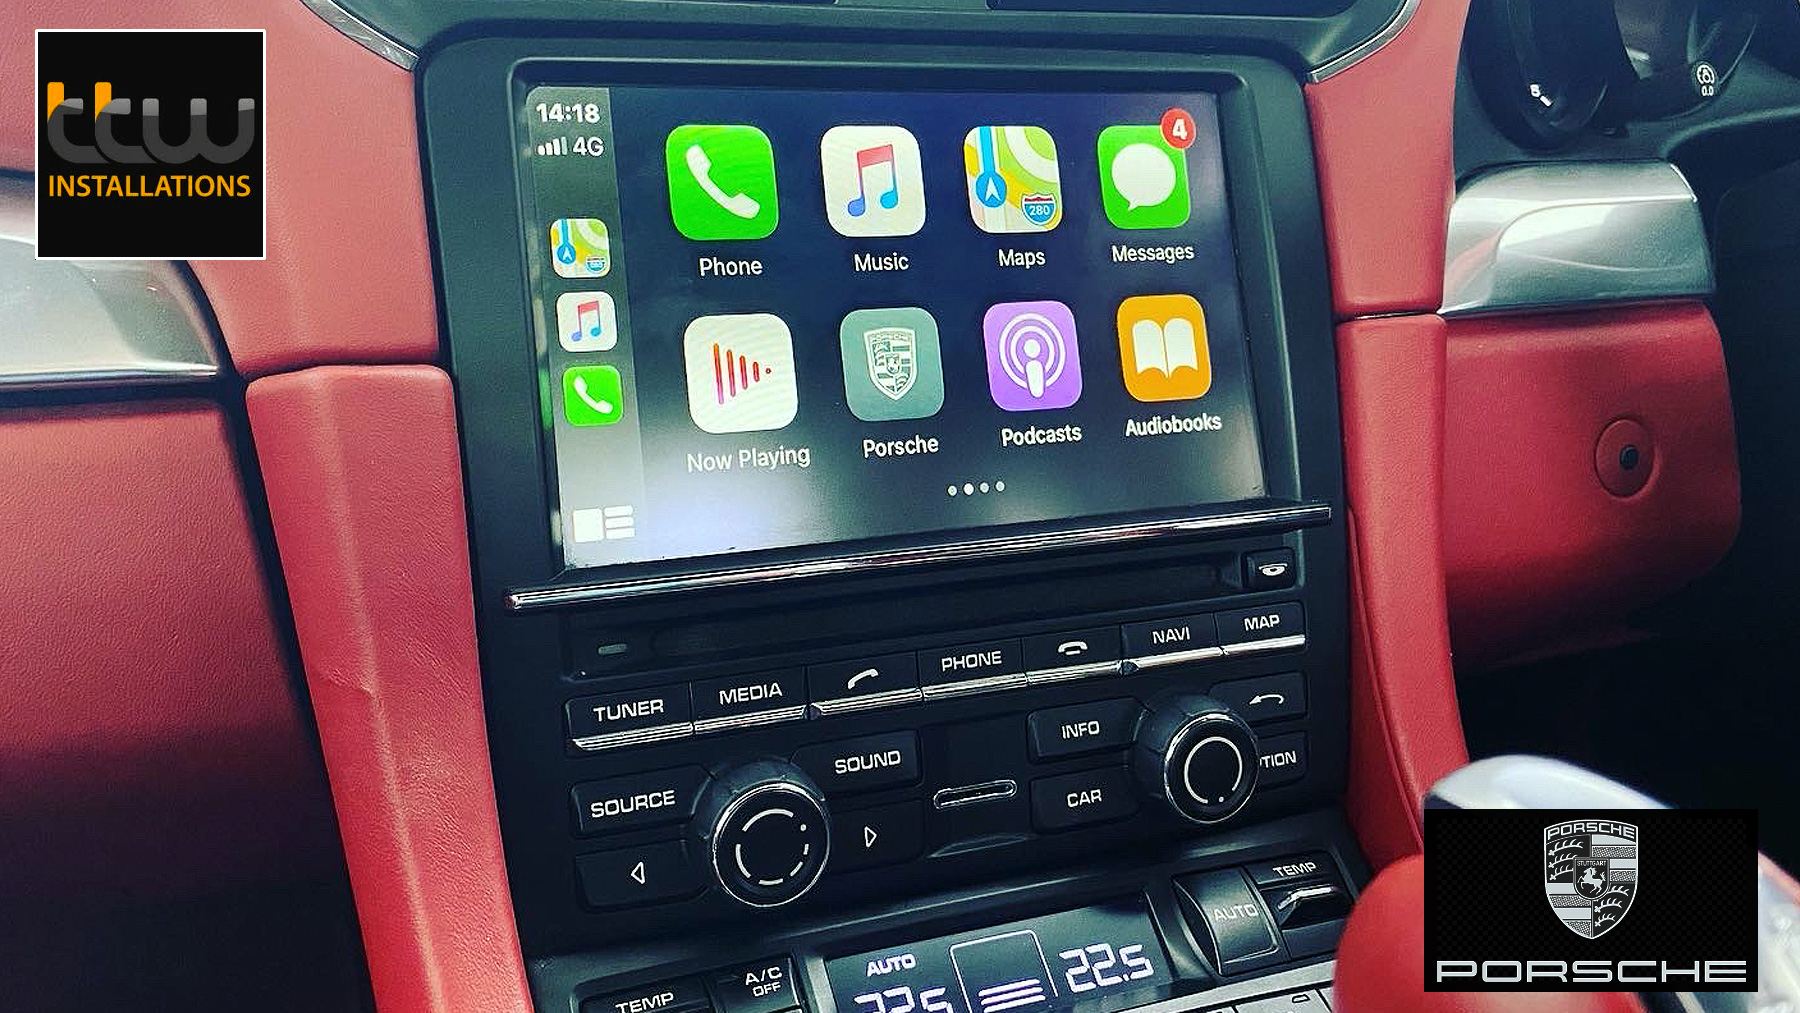 Porsche Apple carplay Upgrade Specialists - TTW Installations